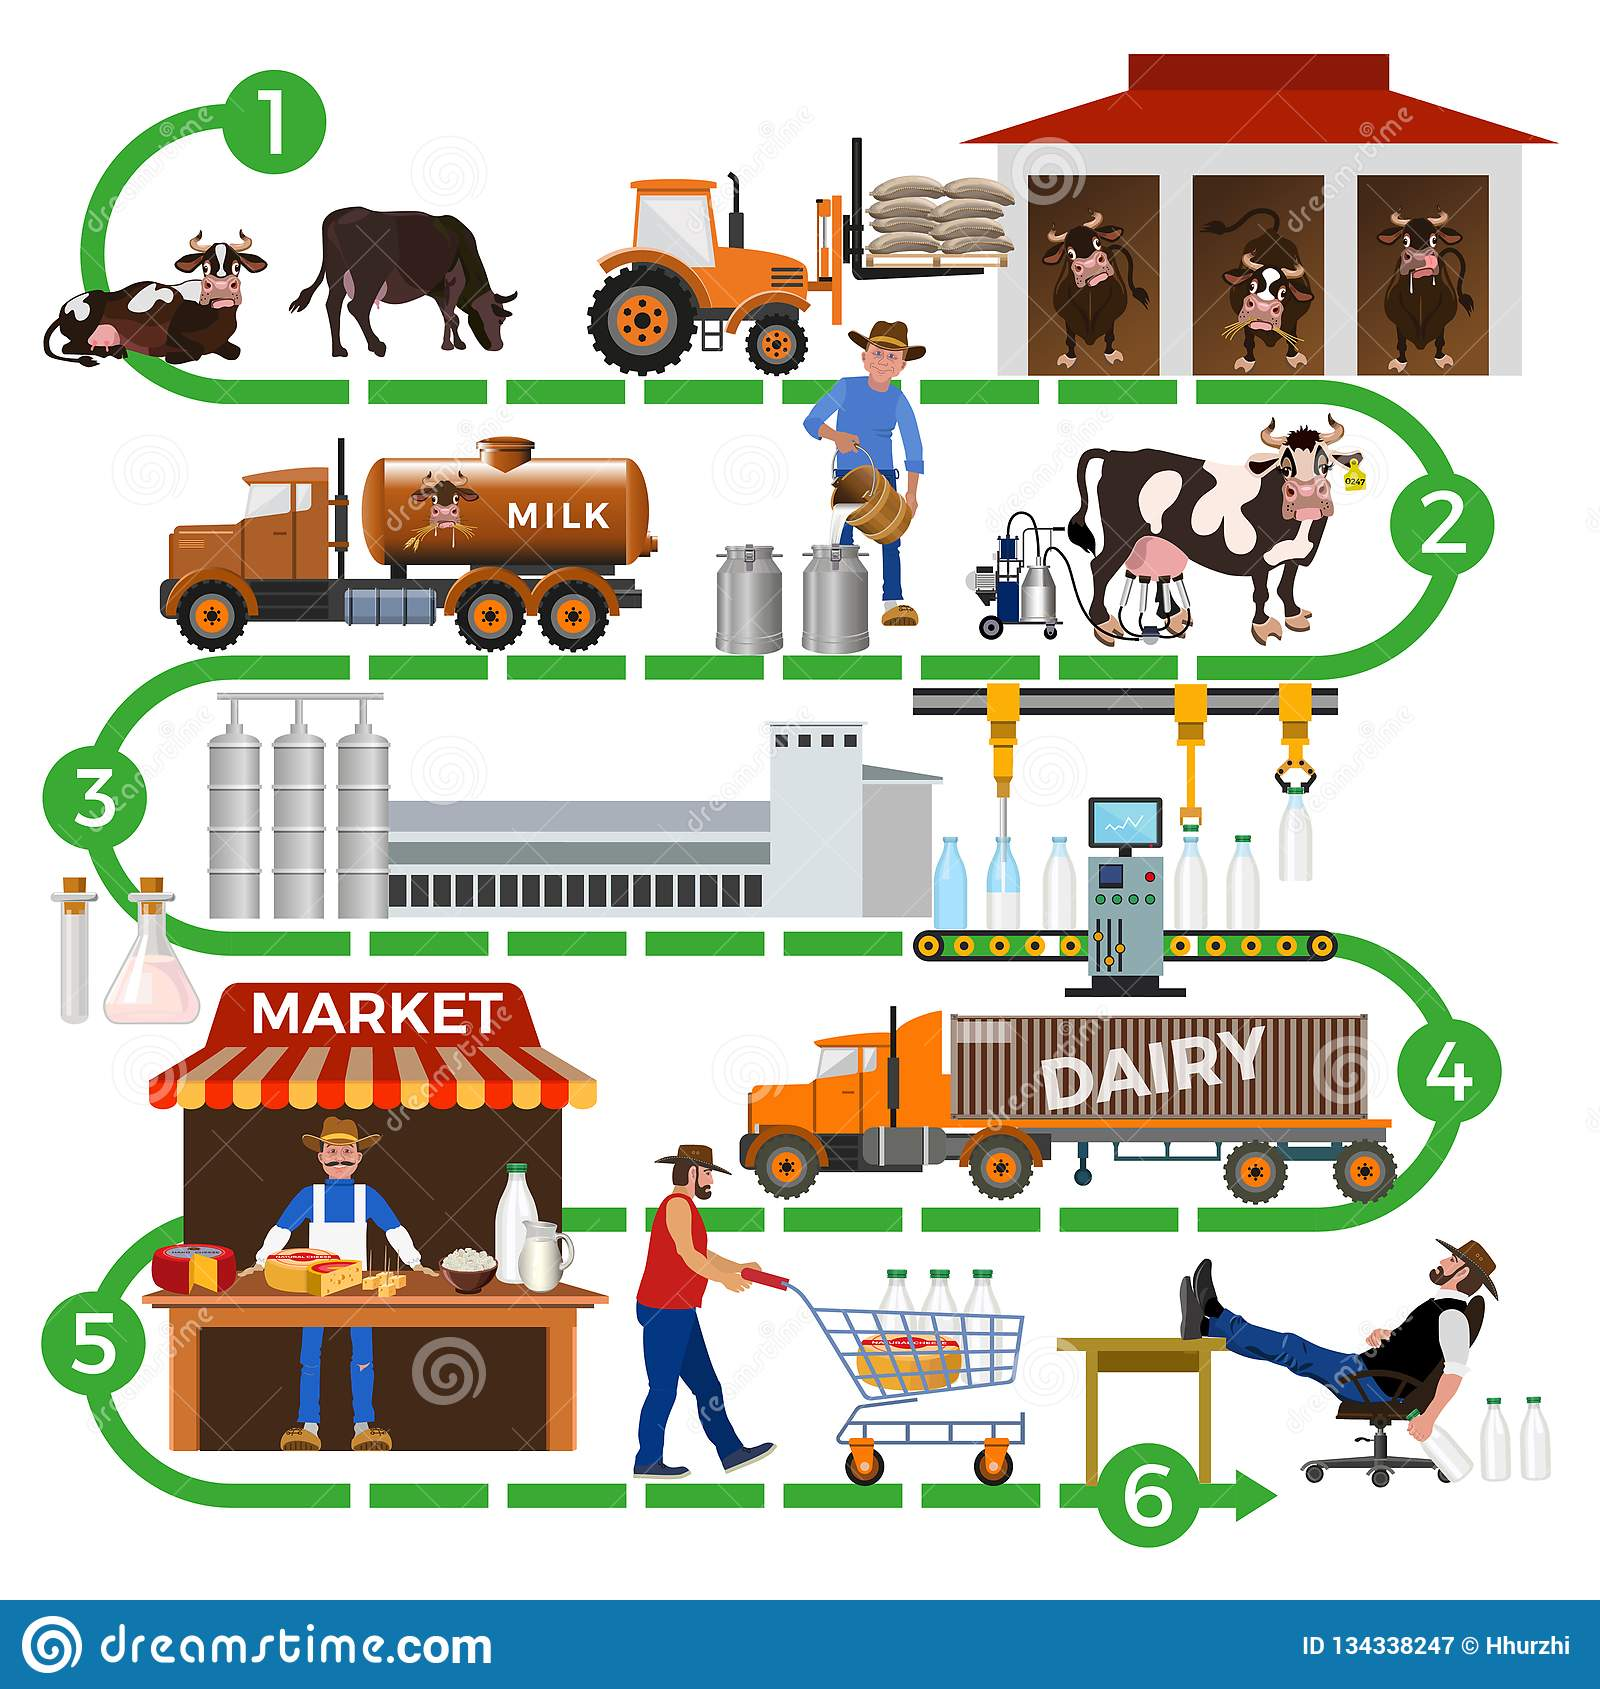 The dairy supply chain